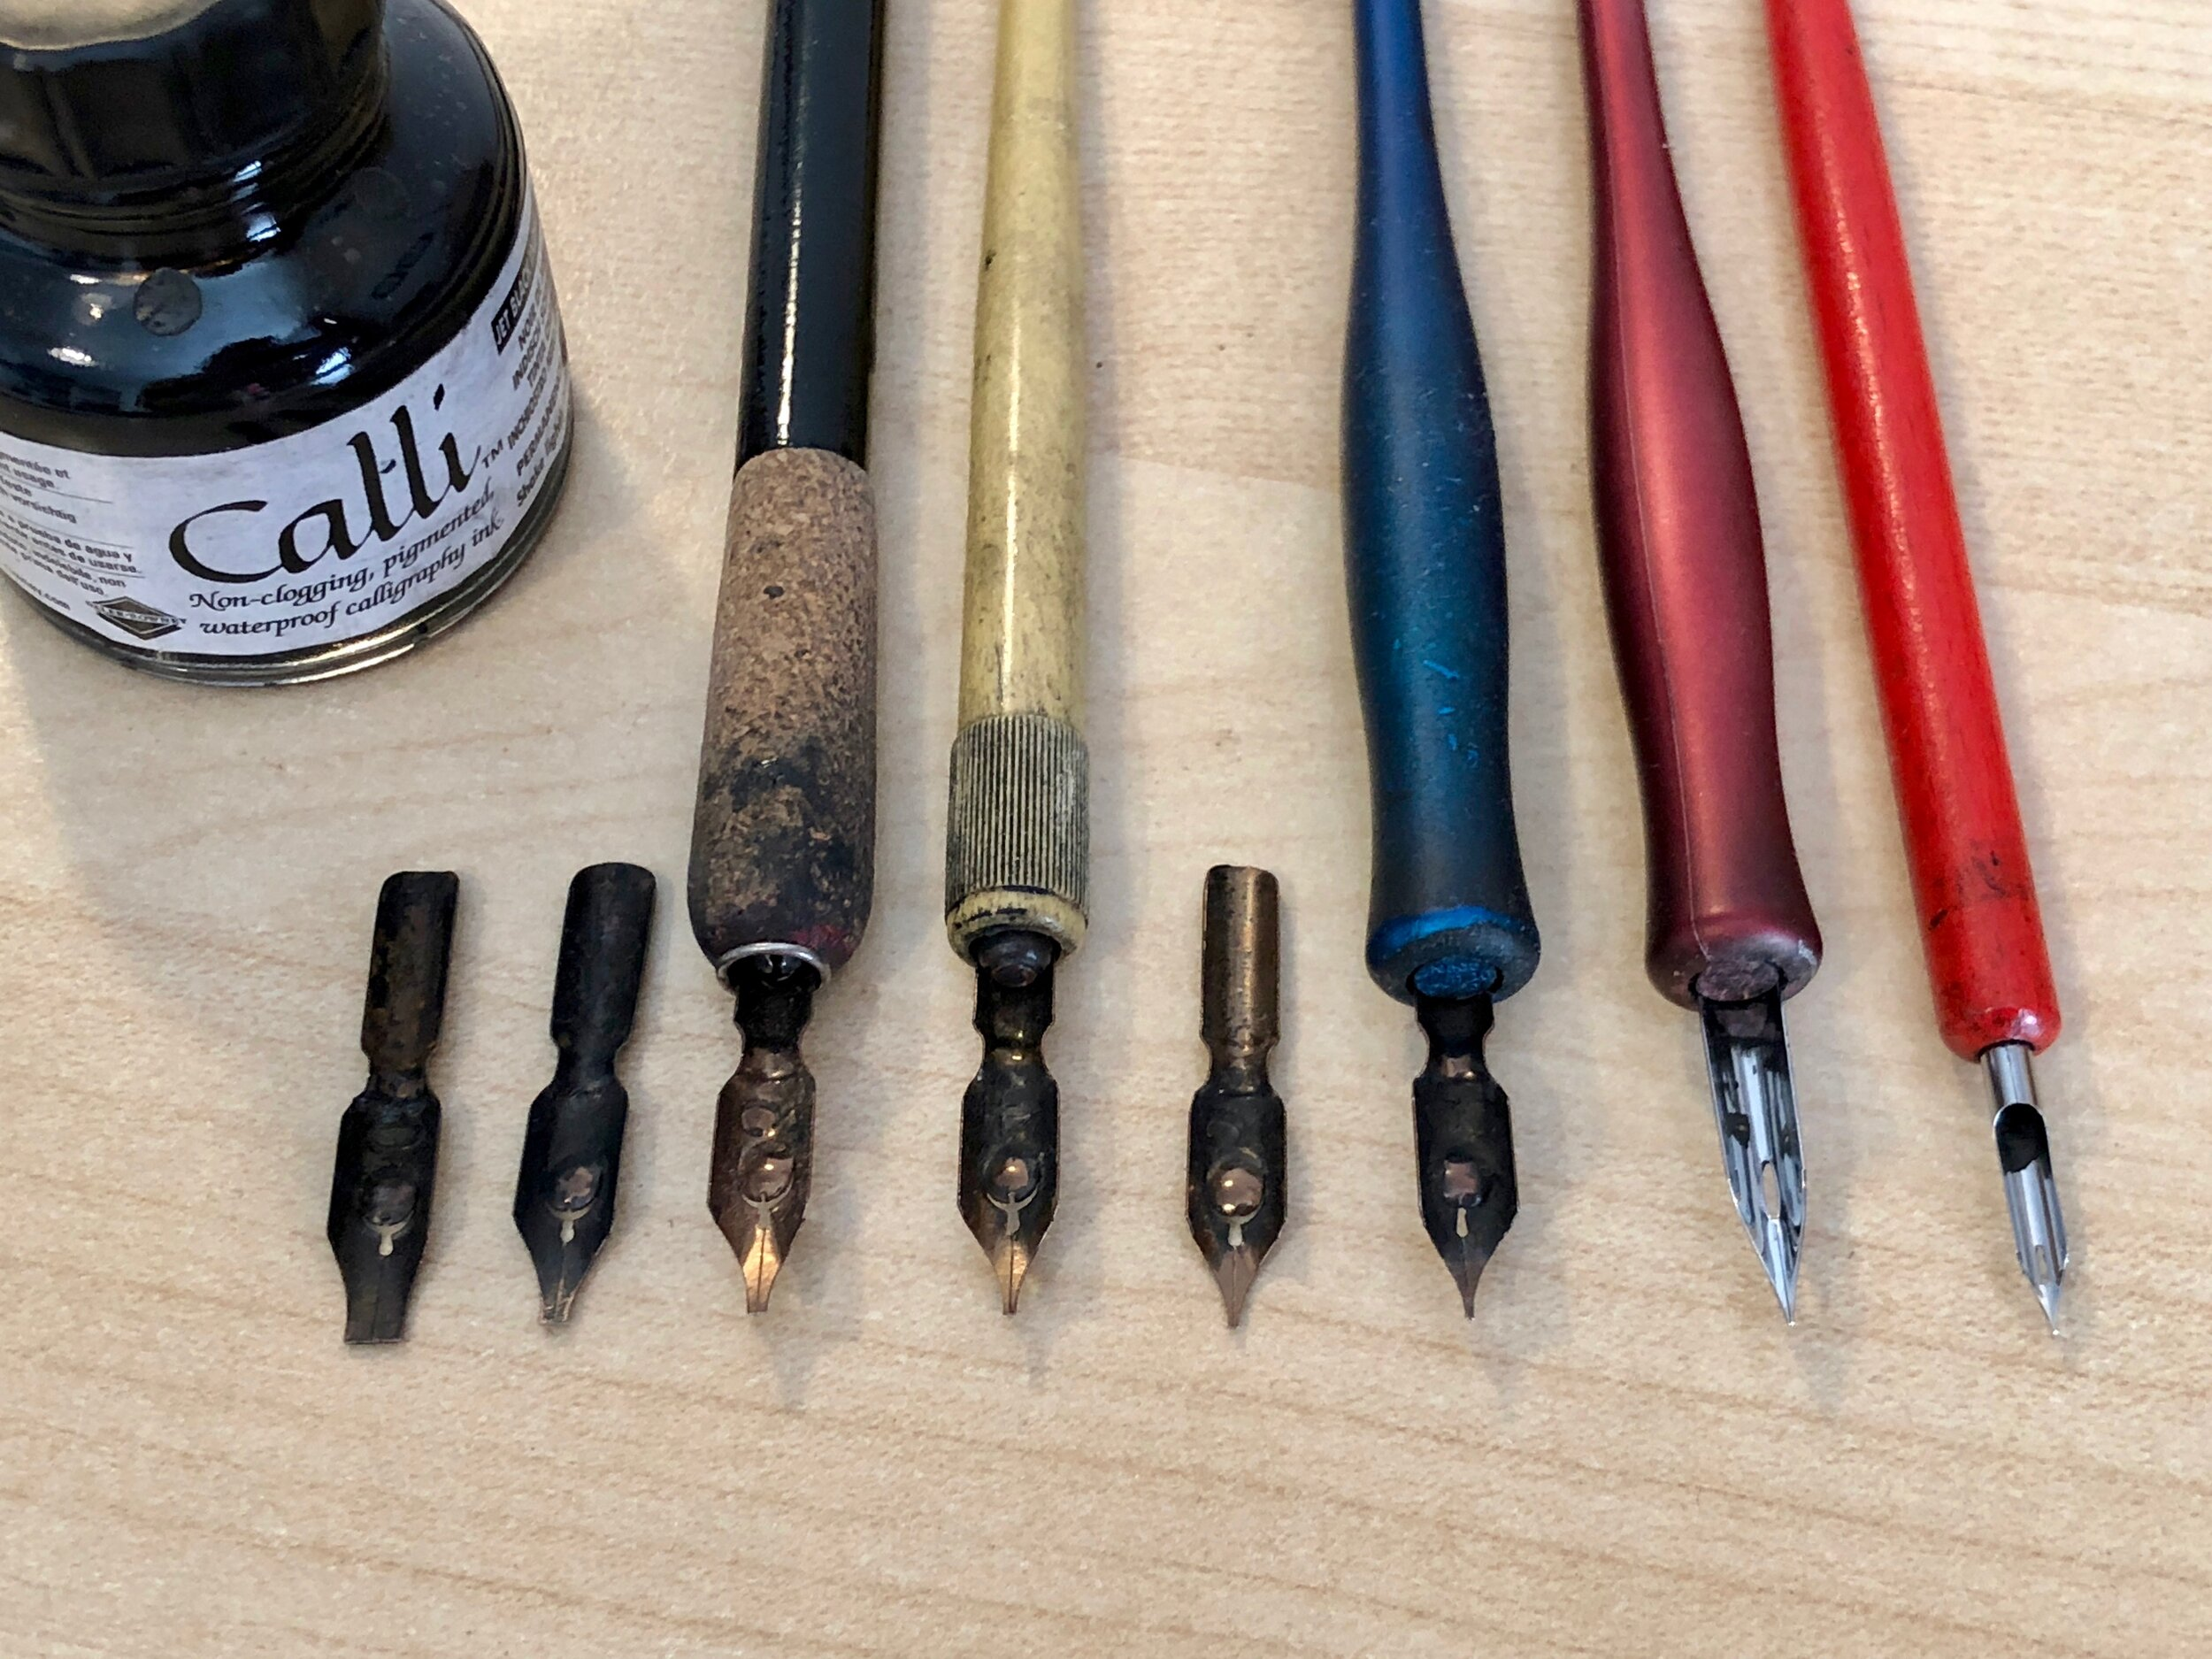 Nibs for calligraphy